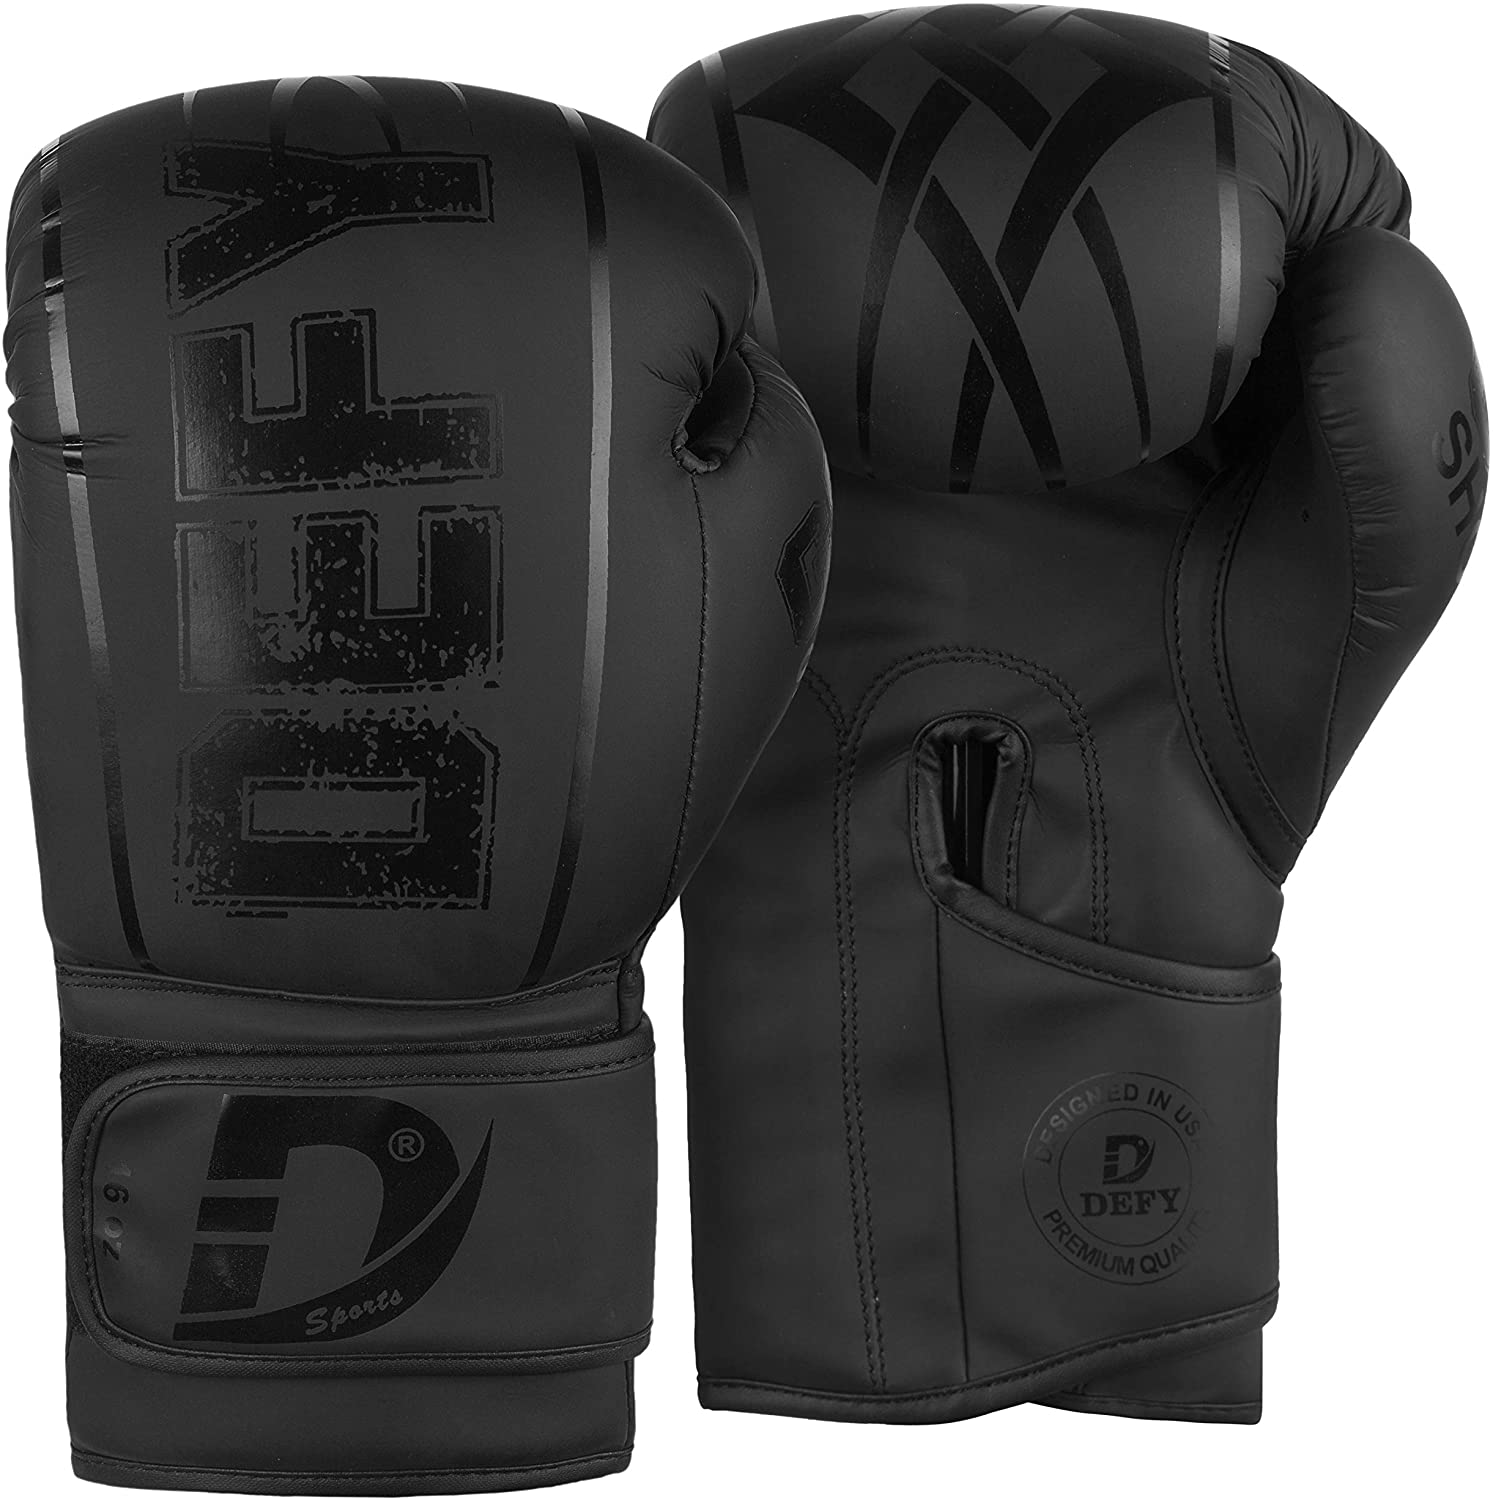 DEFY Boxing Gloves for Men & Women Training MMA Muay Thai Premium Quality Gloves for Punching Heavy Bags Sparring Kickboxing Fighting Gloves